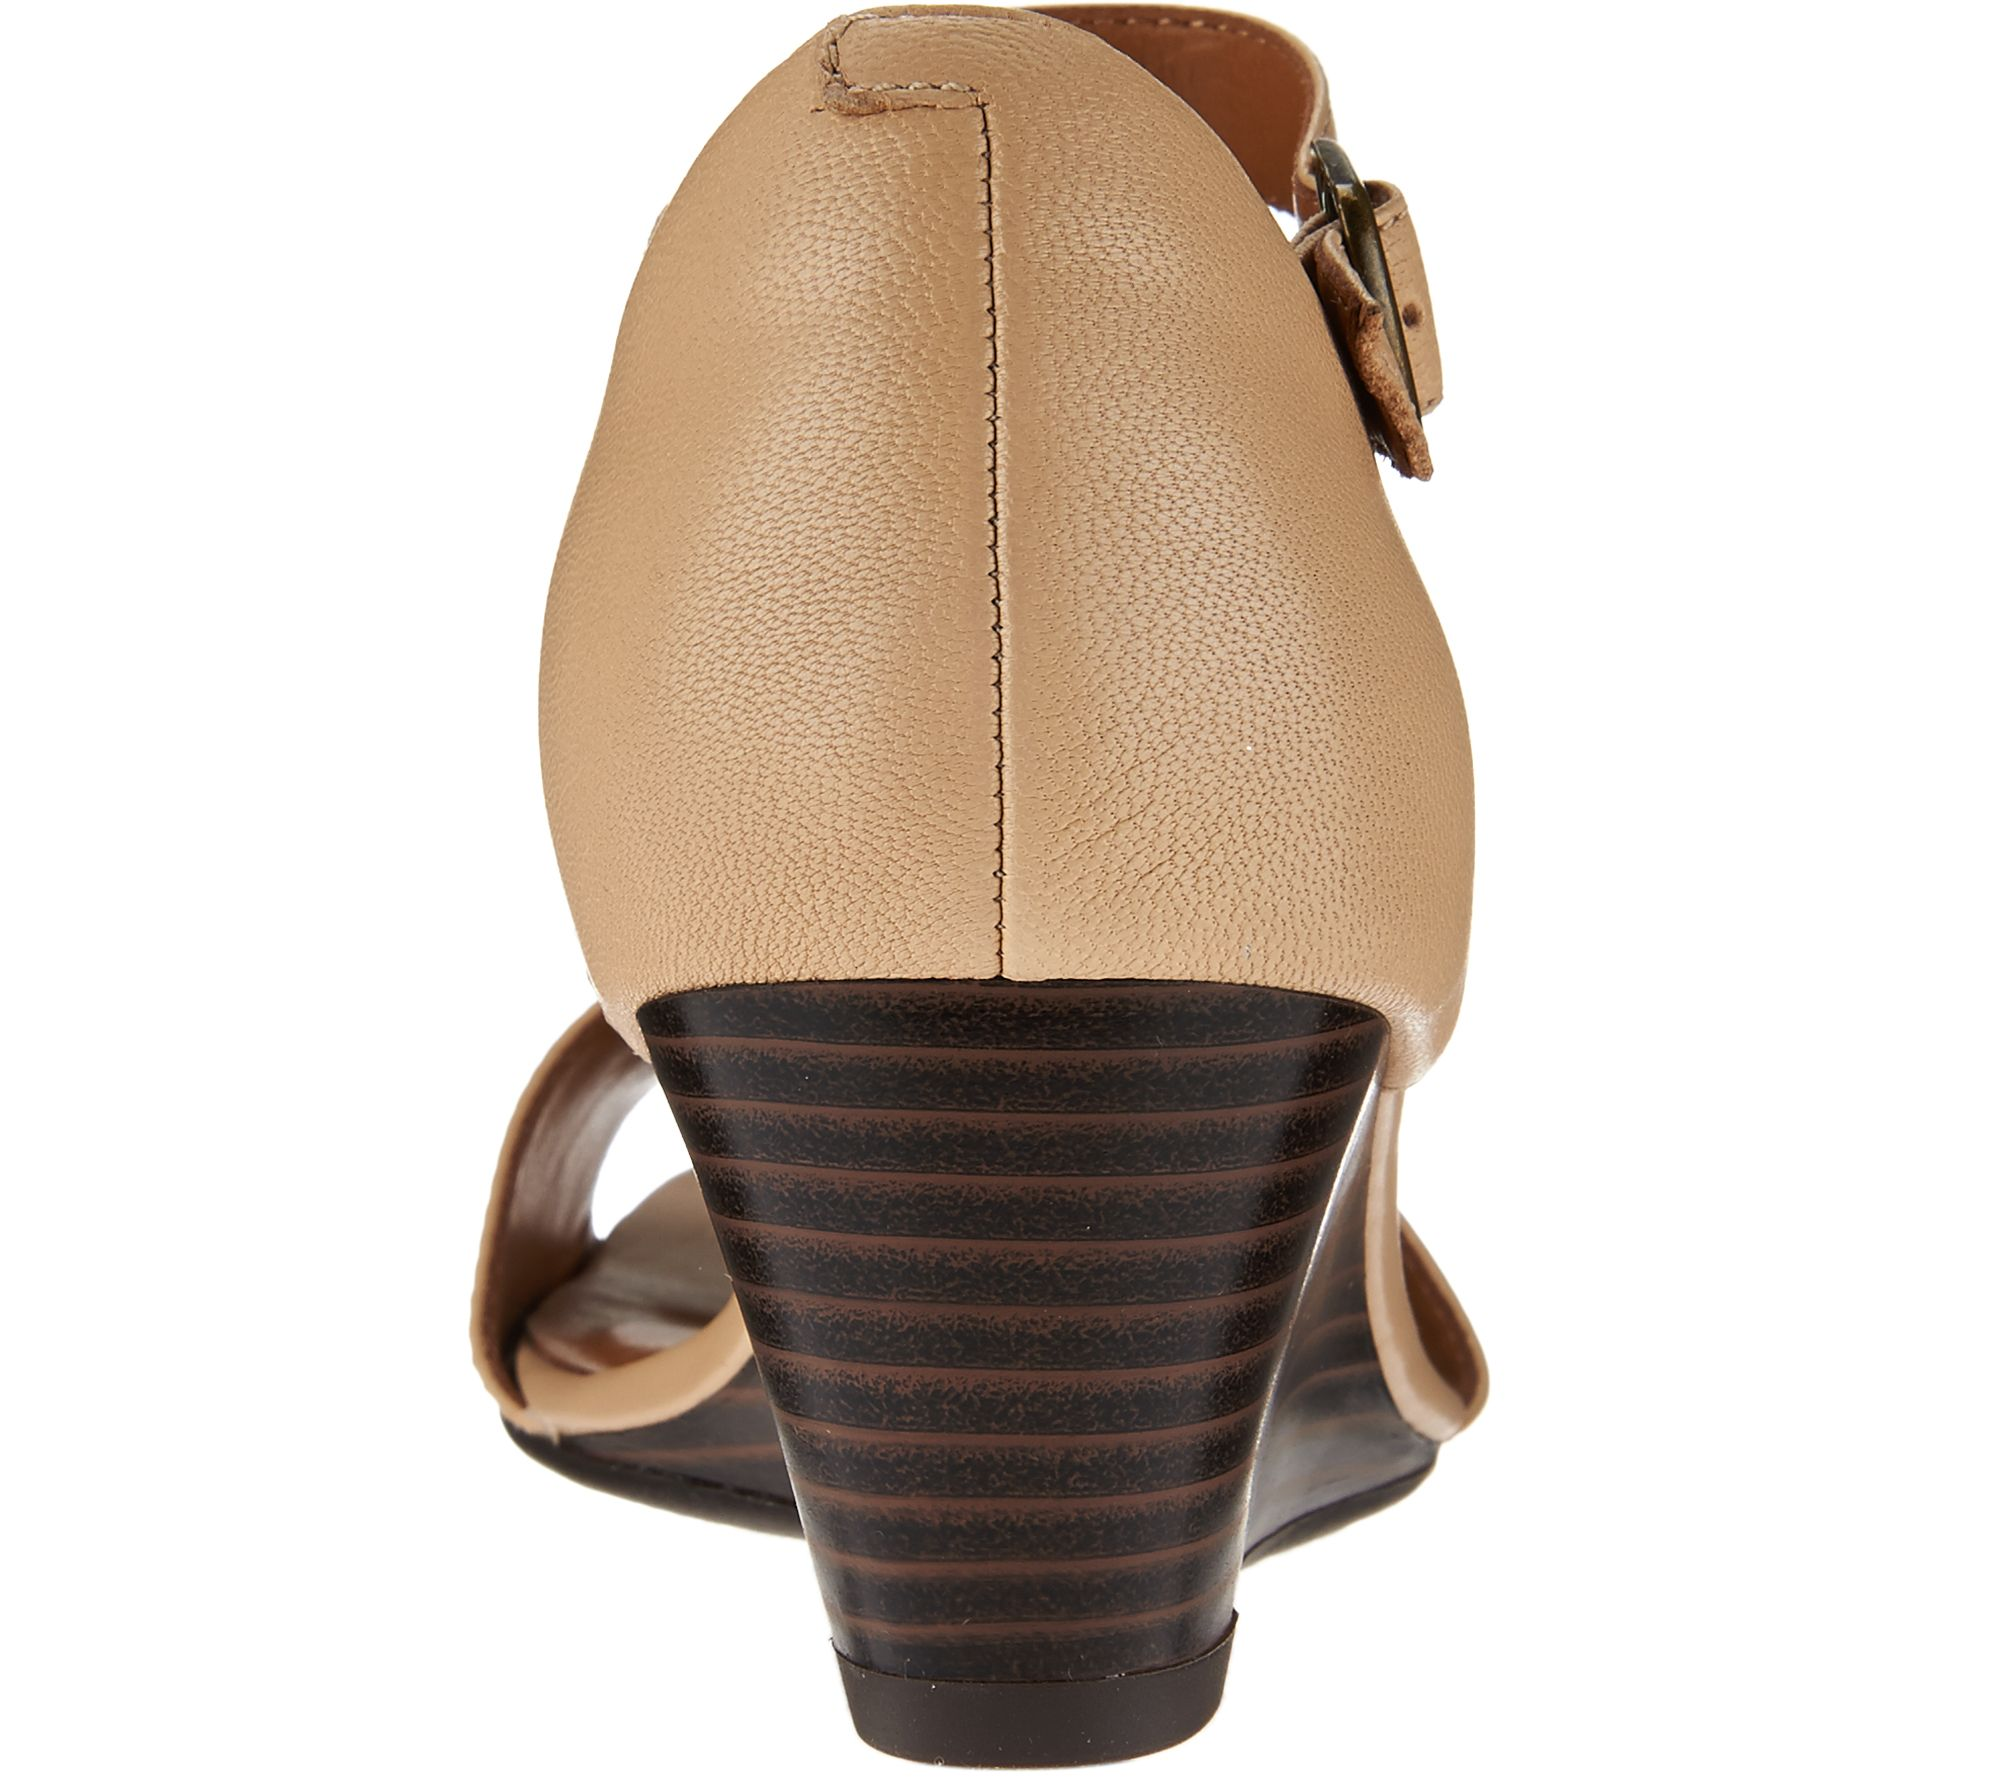 4907a645b7c3 Clarks Leather Open Toe Wedge Sandals - Brielle Drive - Page 1 — QVC.com